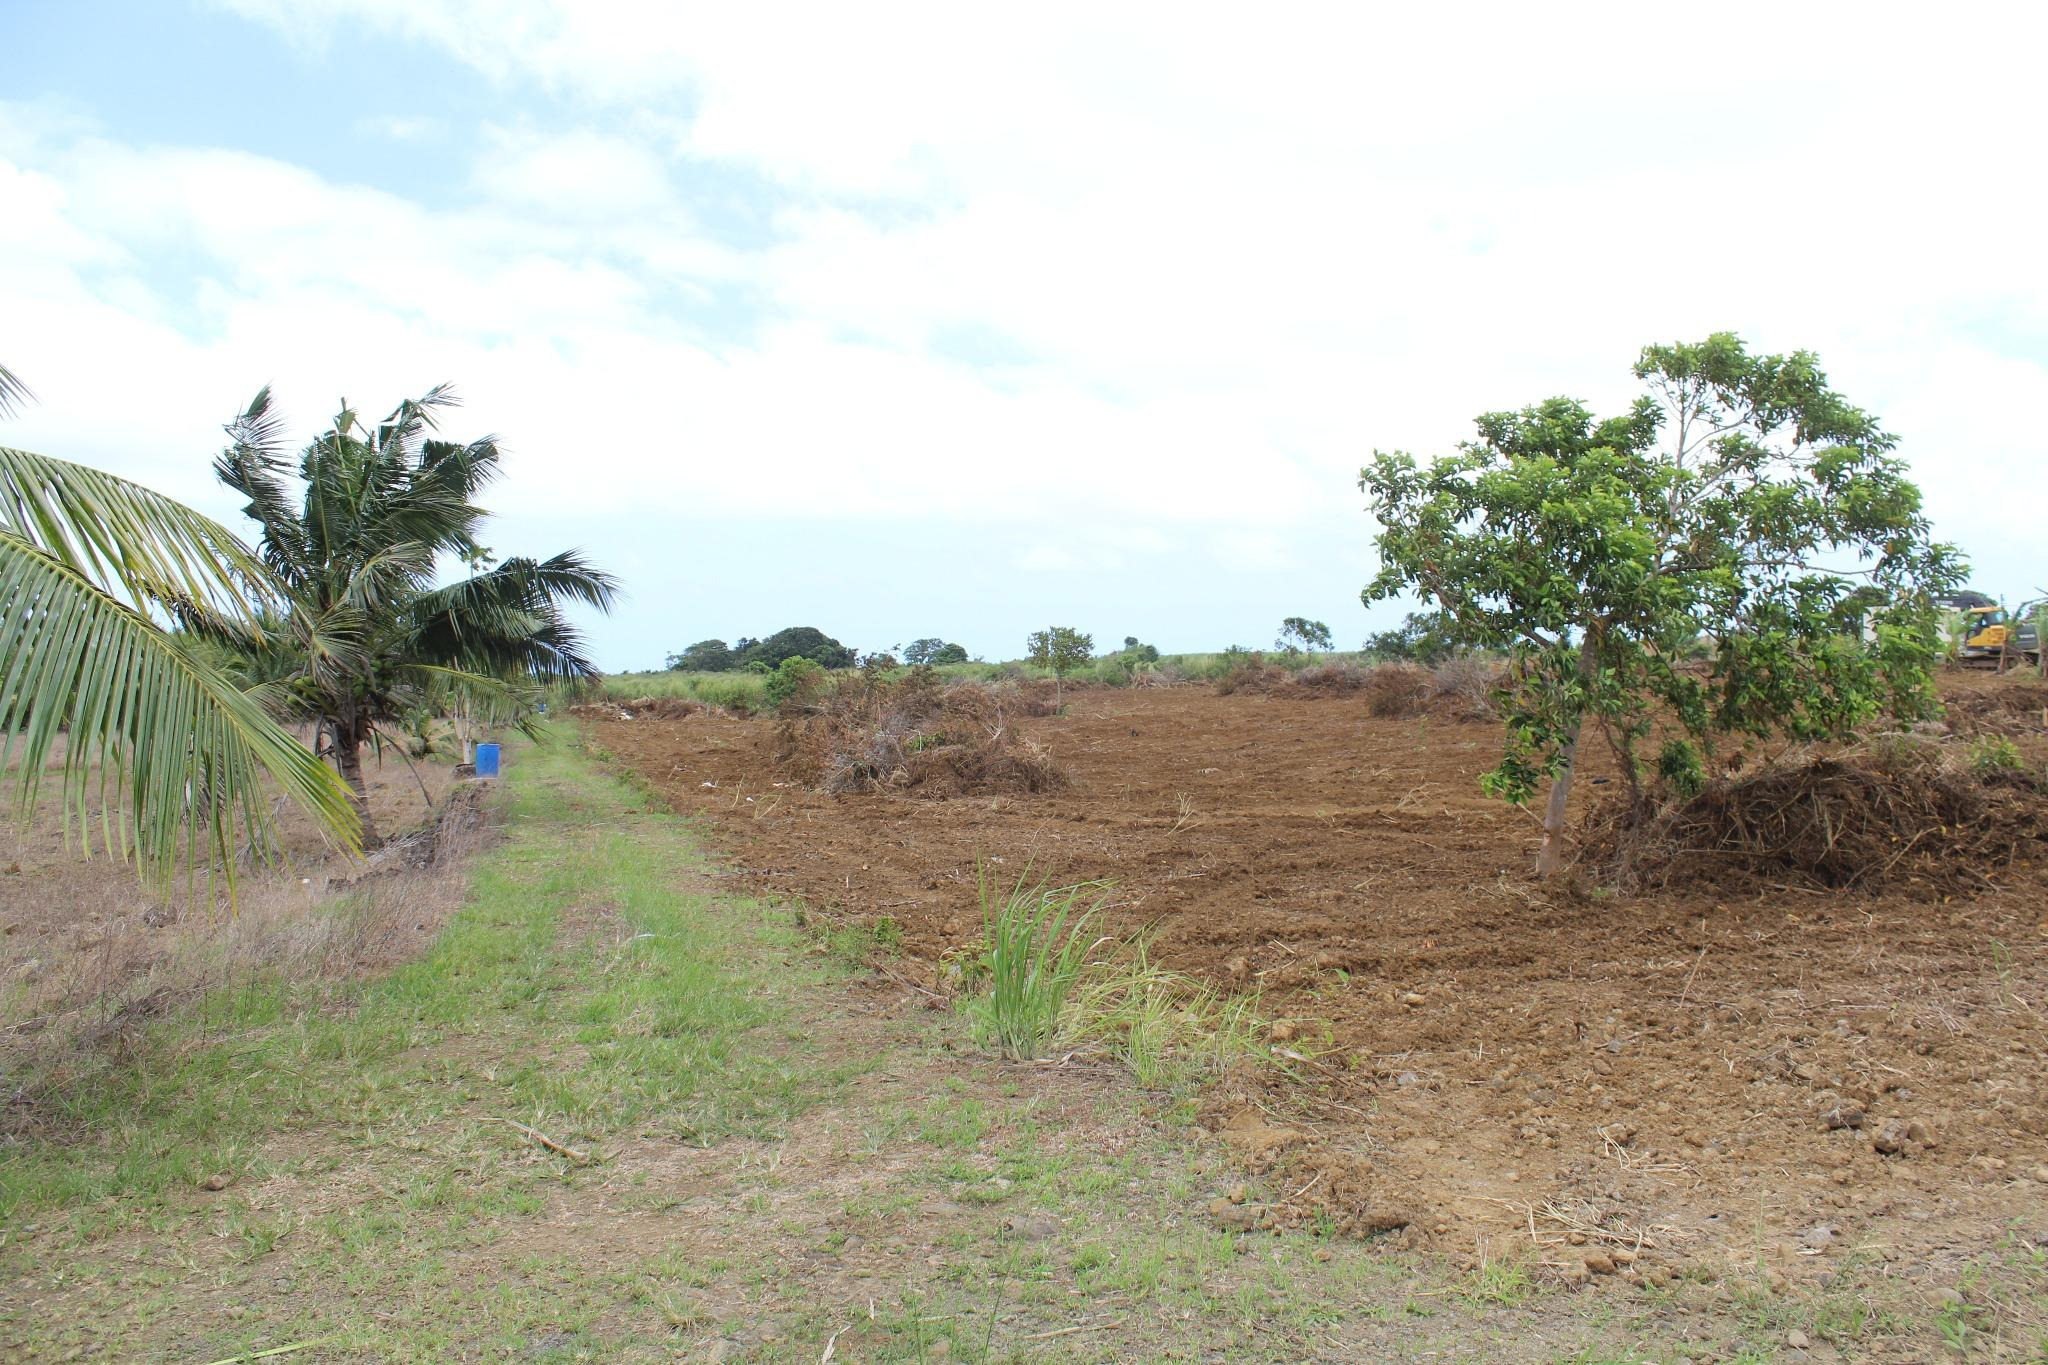 FOR SALE – Agricultural plot of land of 3 acres 07 in Gros Bois.